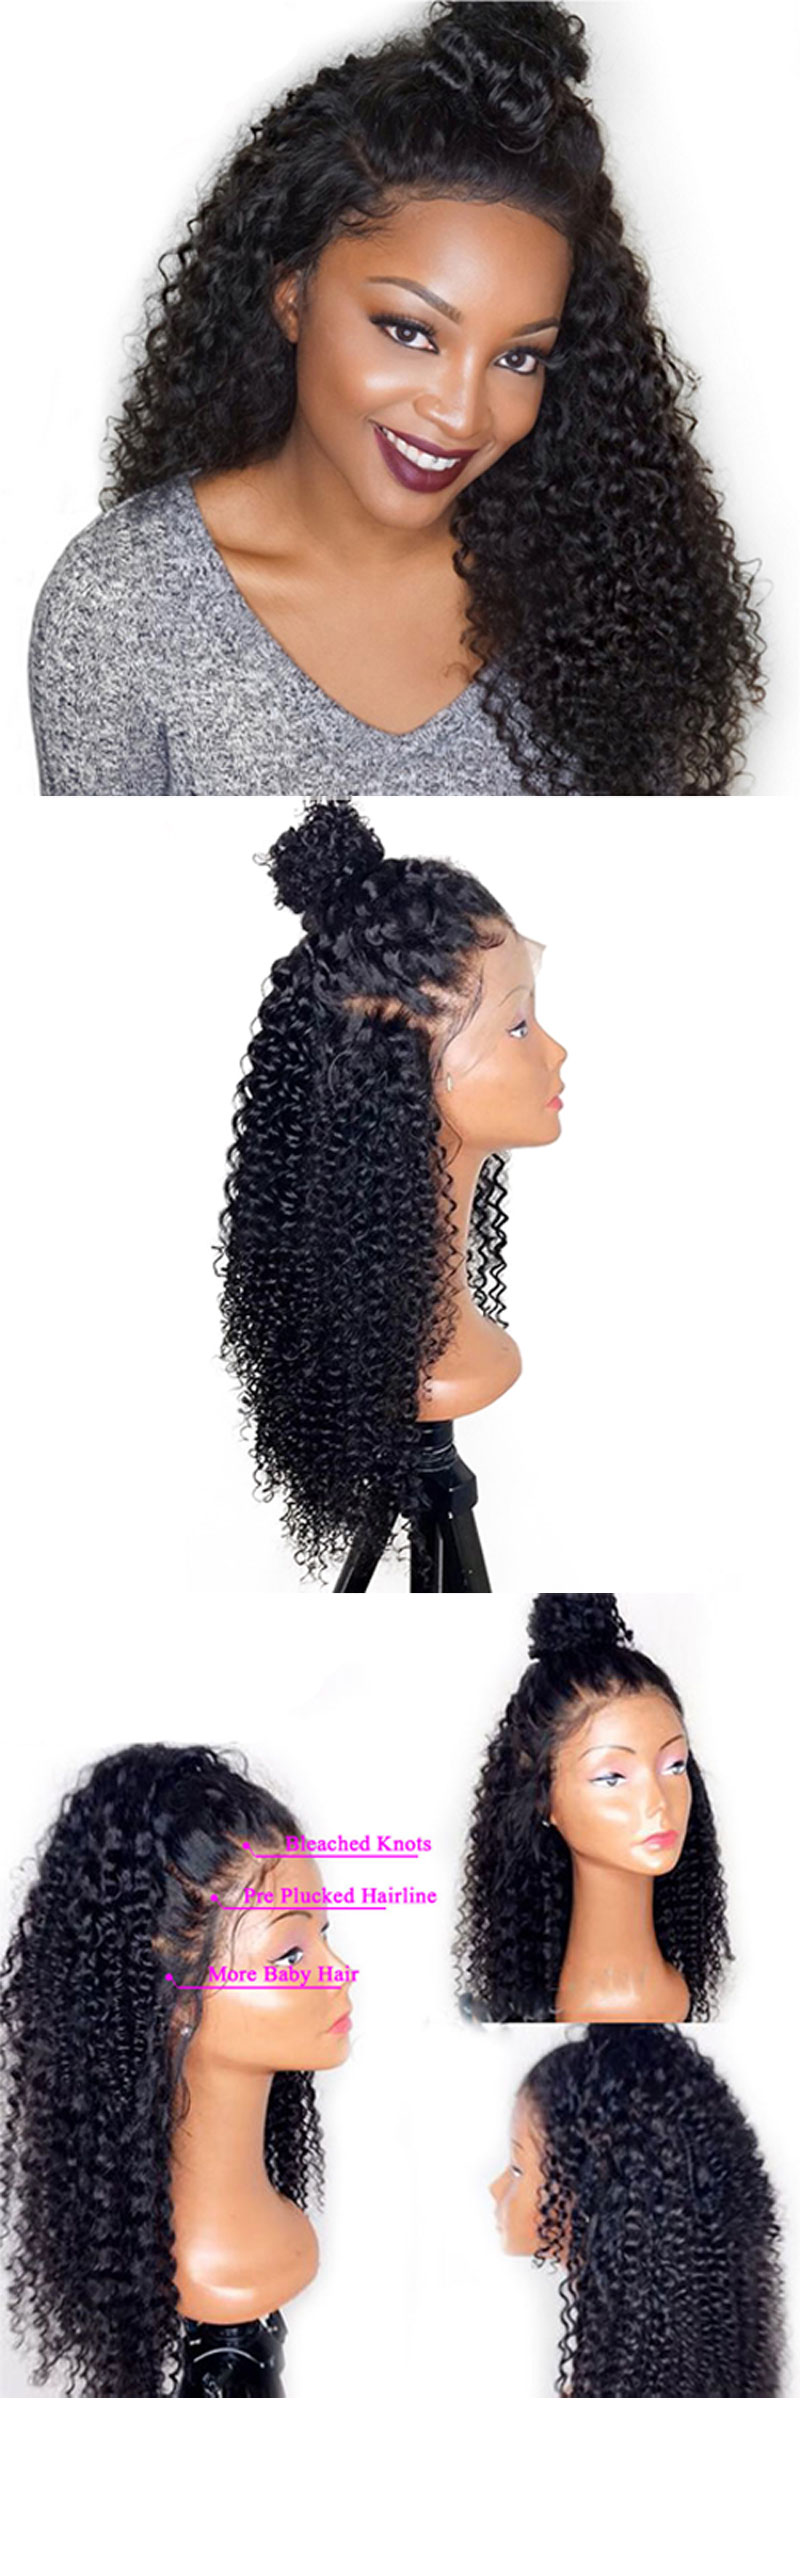 Pre-Plucked Kinky Curly Glueless Lace Front Wig 100% Virgin Brazilian Human Hair Wig With Baby Hair For Black Women